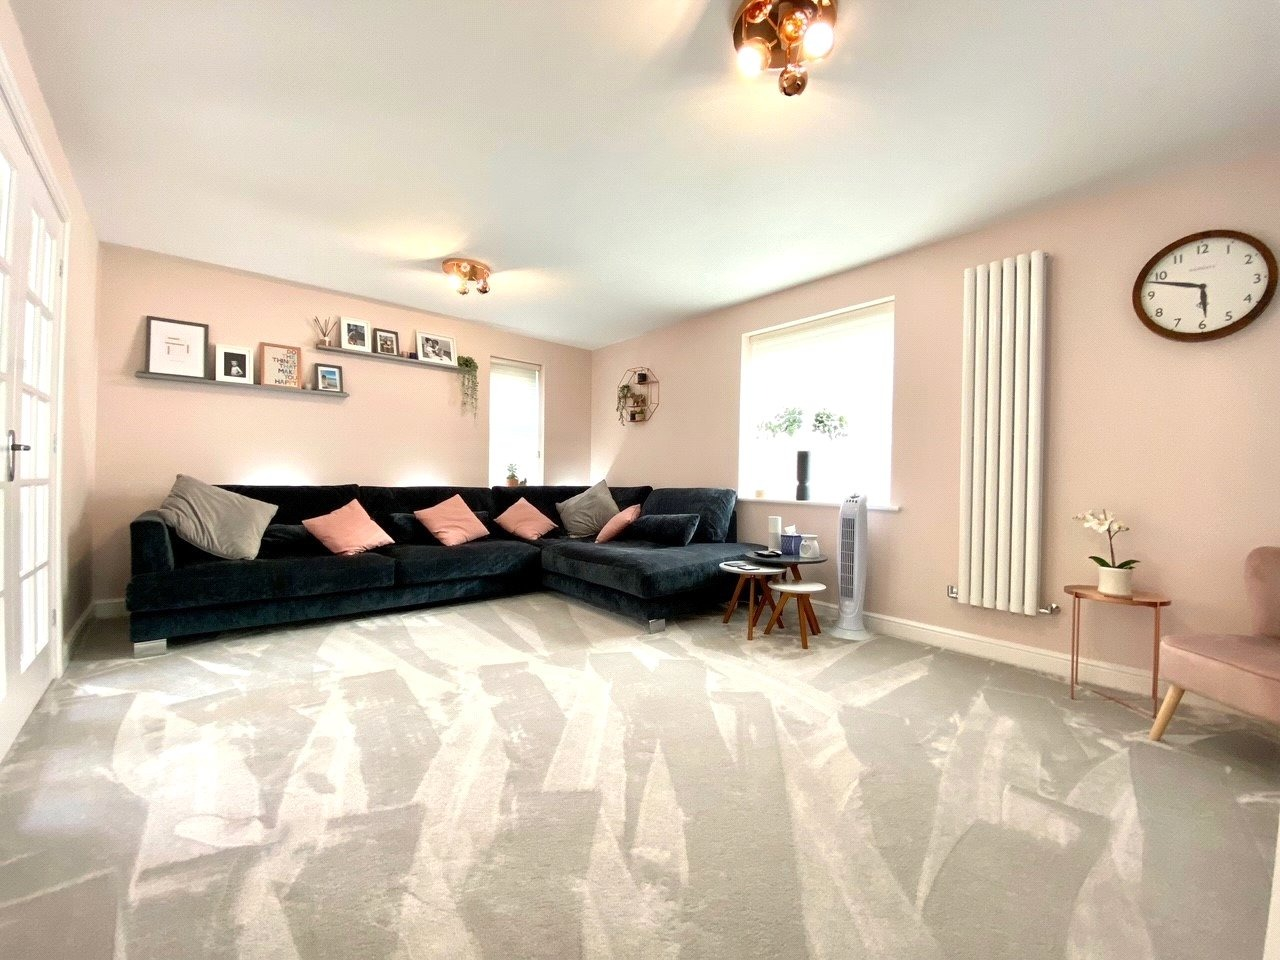 4 bed detached house for sale in Lannesbury Crescent, St. Neots  - Property Image 4